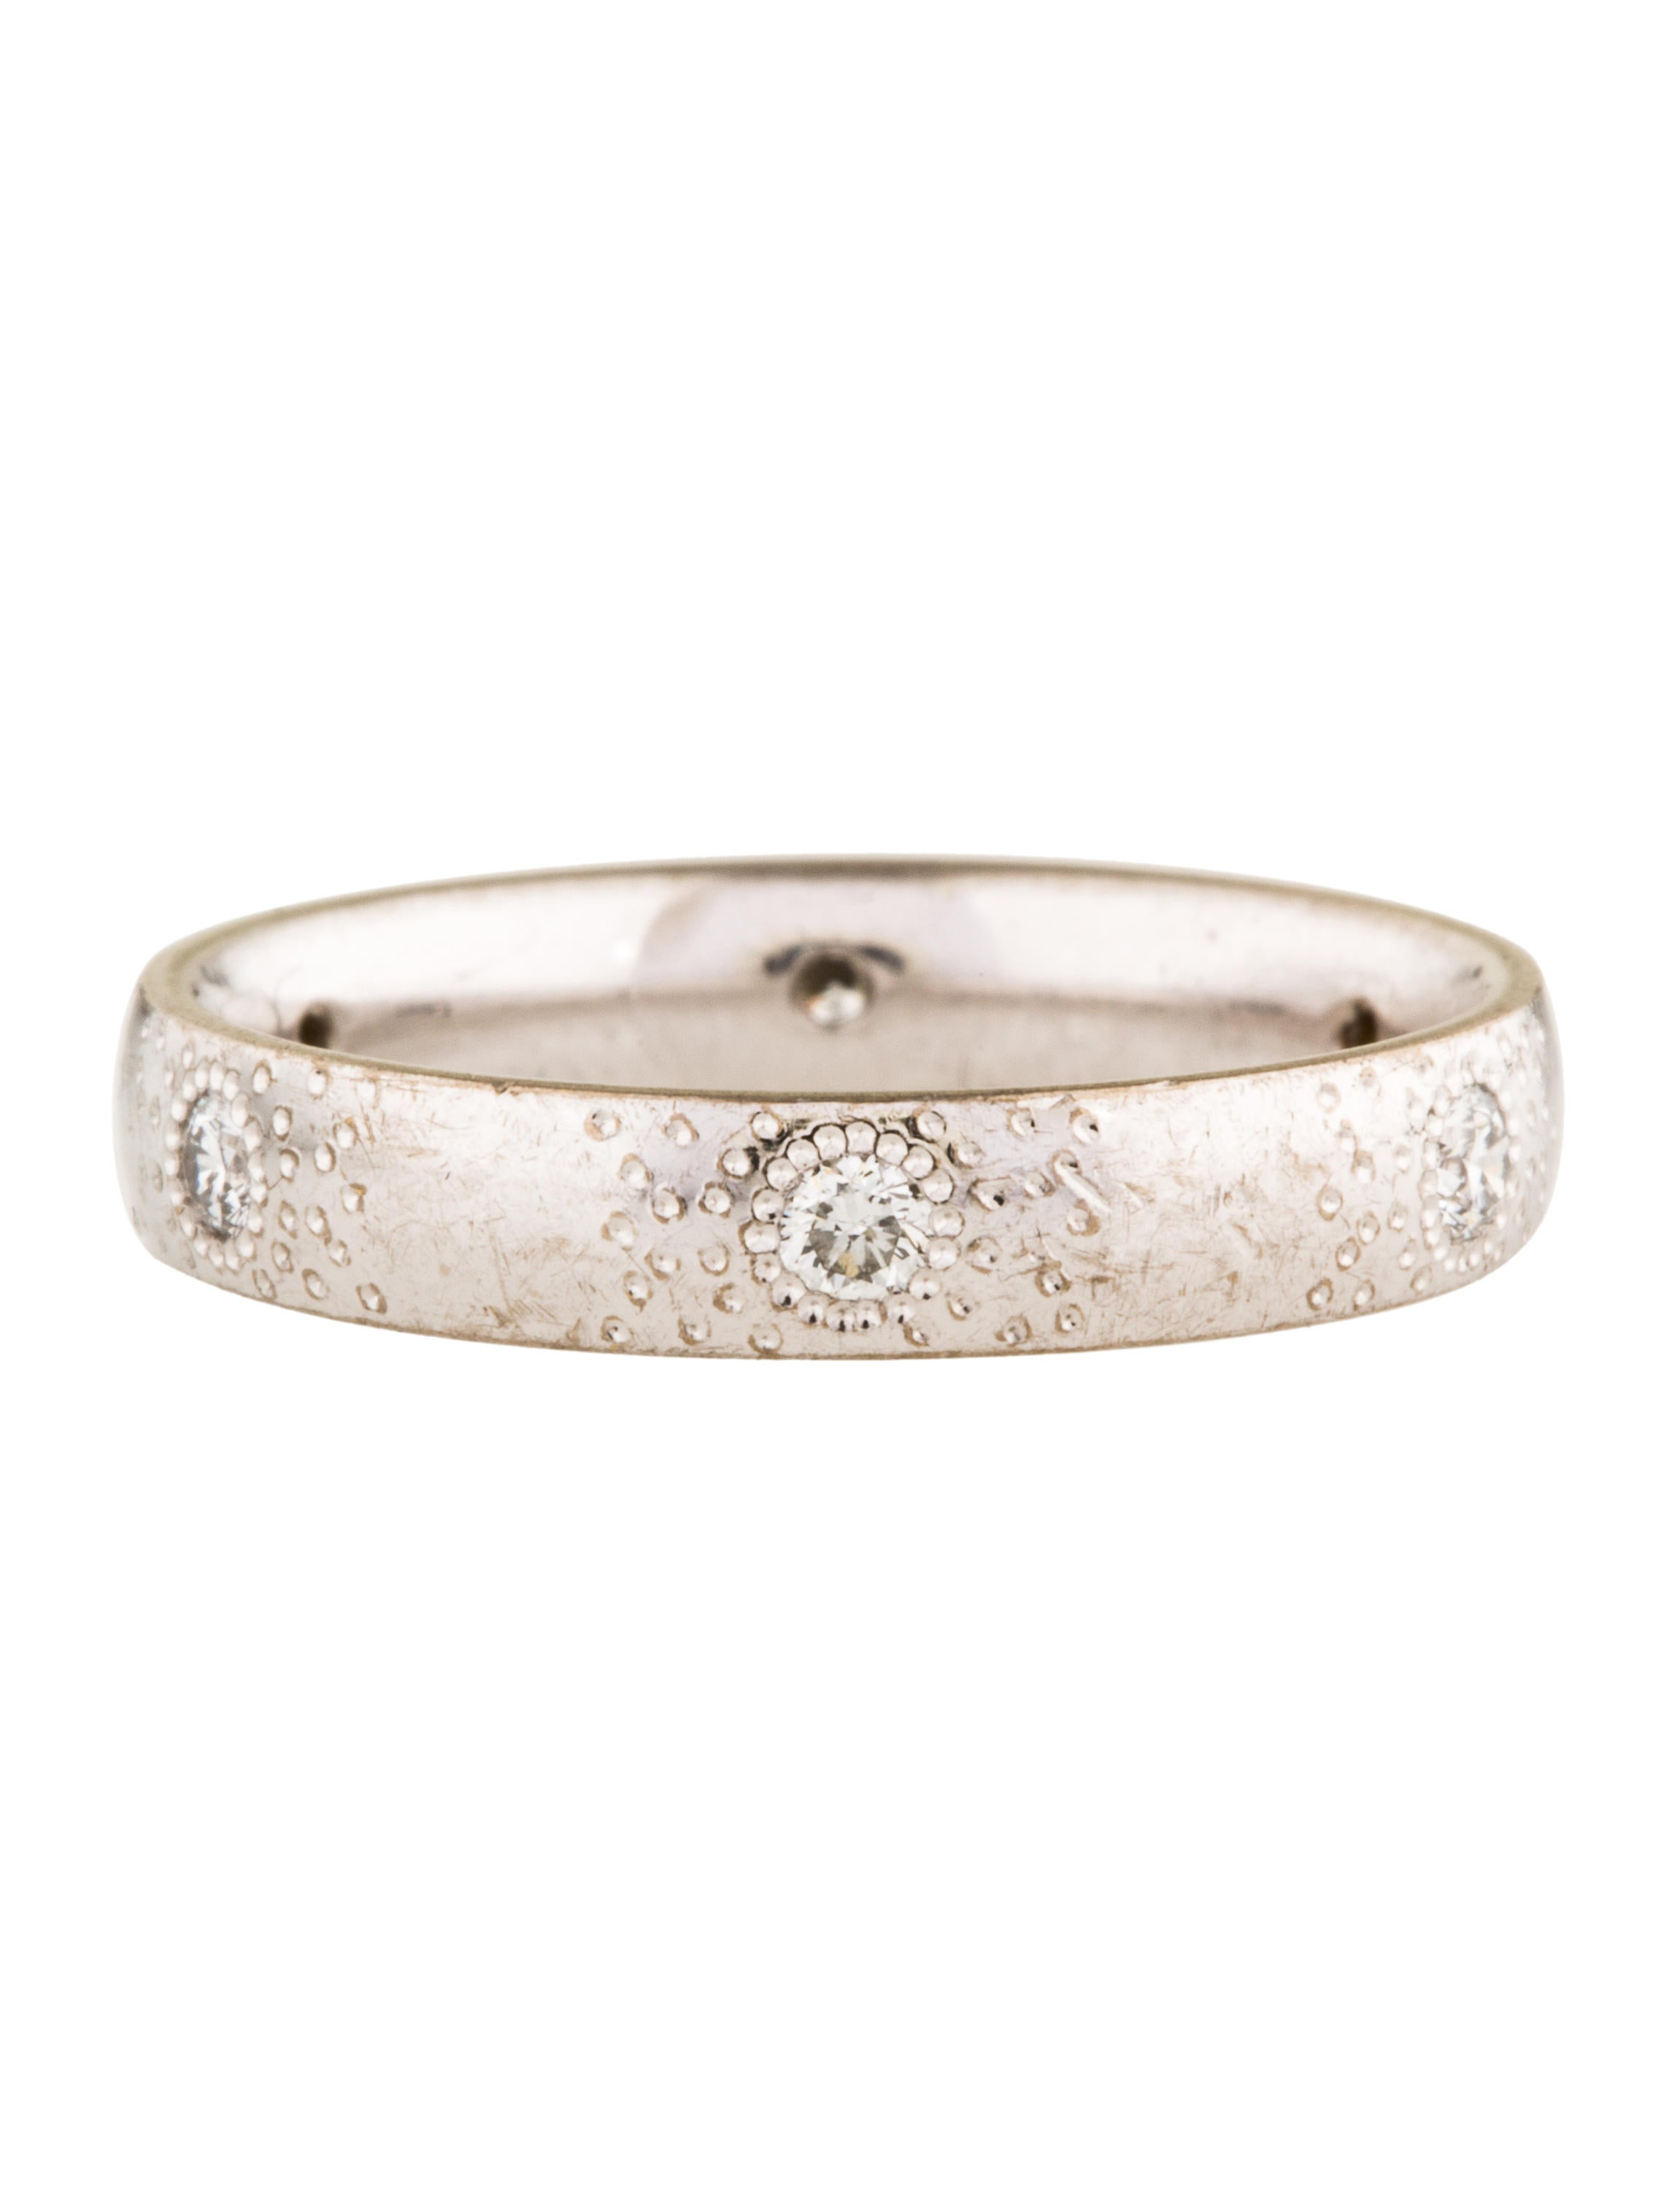 De Beers 18kt white gold Talisman diamond ring - Unavailable HfJqUyp0H1